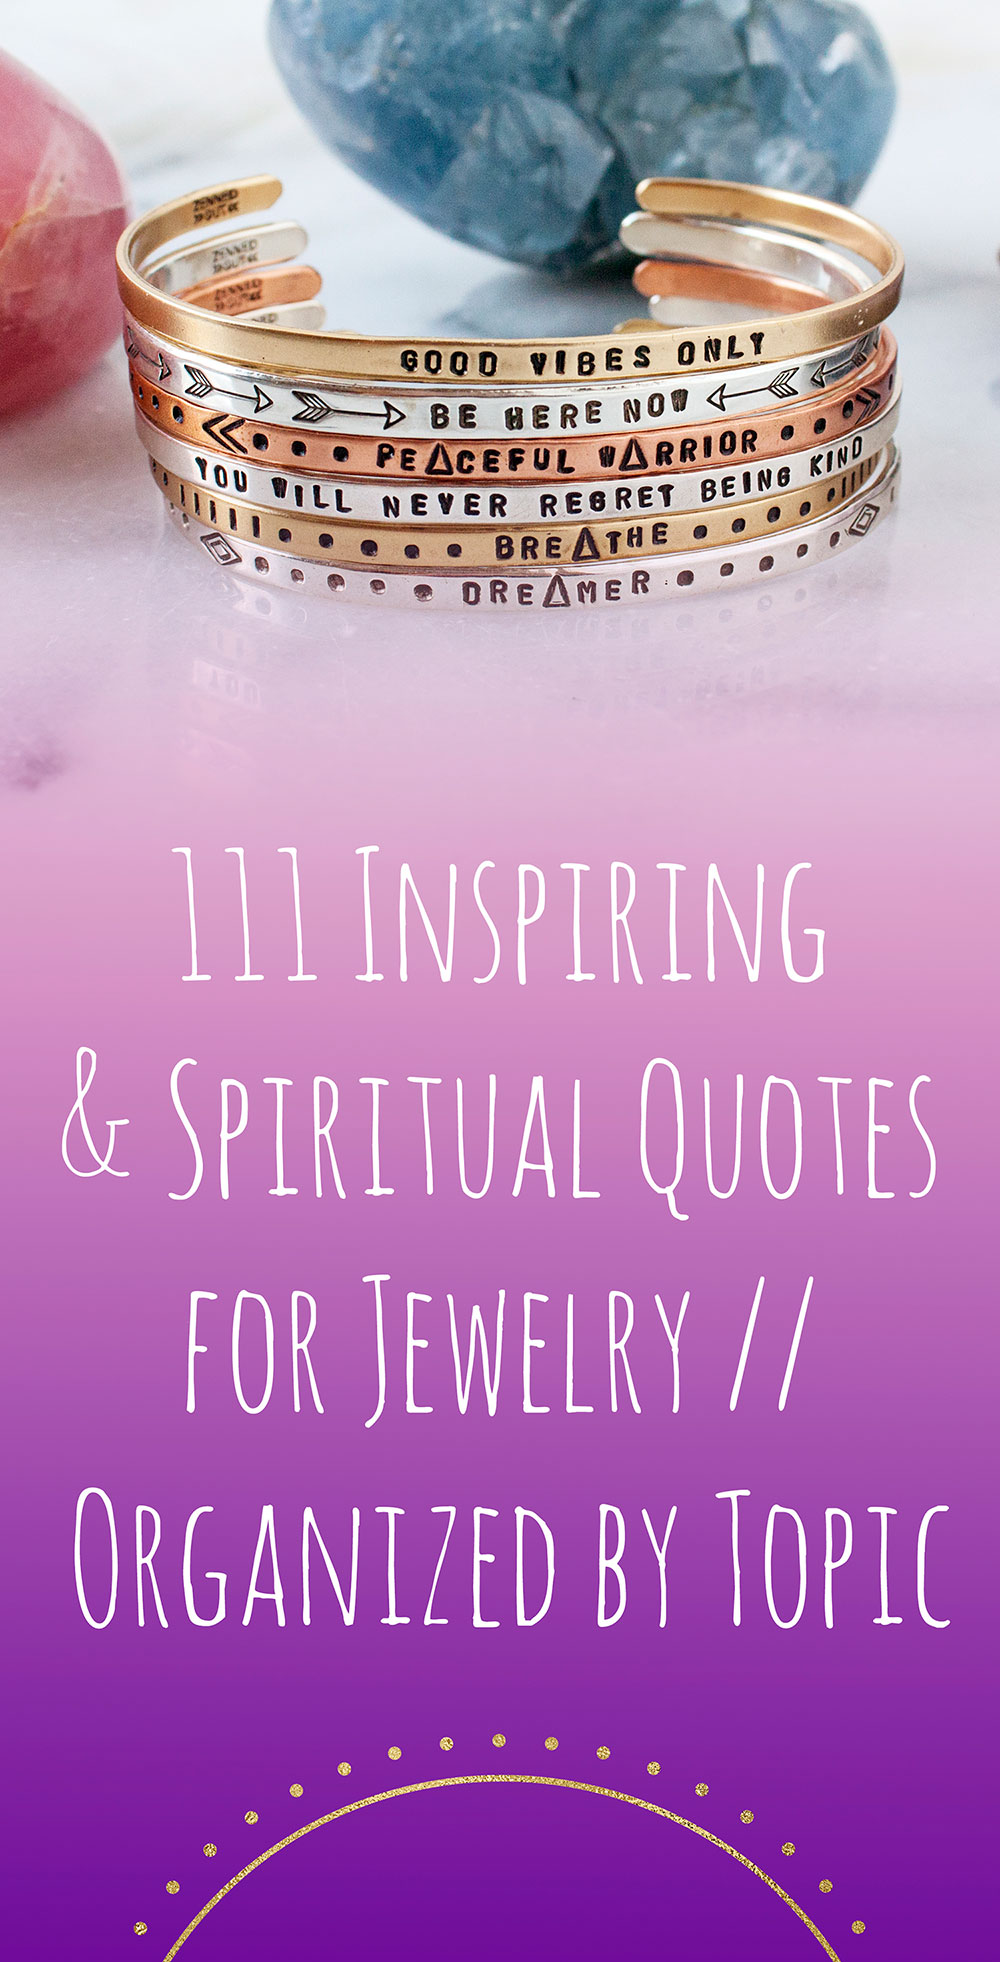 pic2-spiritual-quotes-for-jewelry